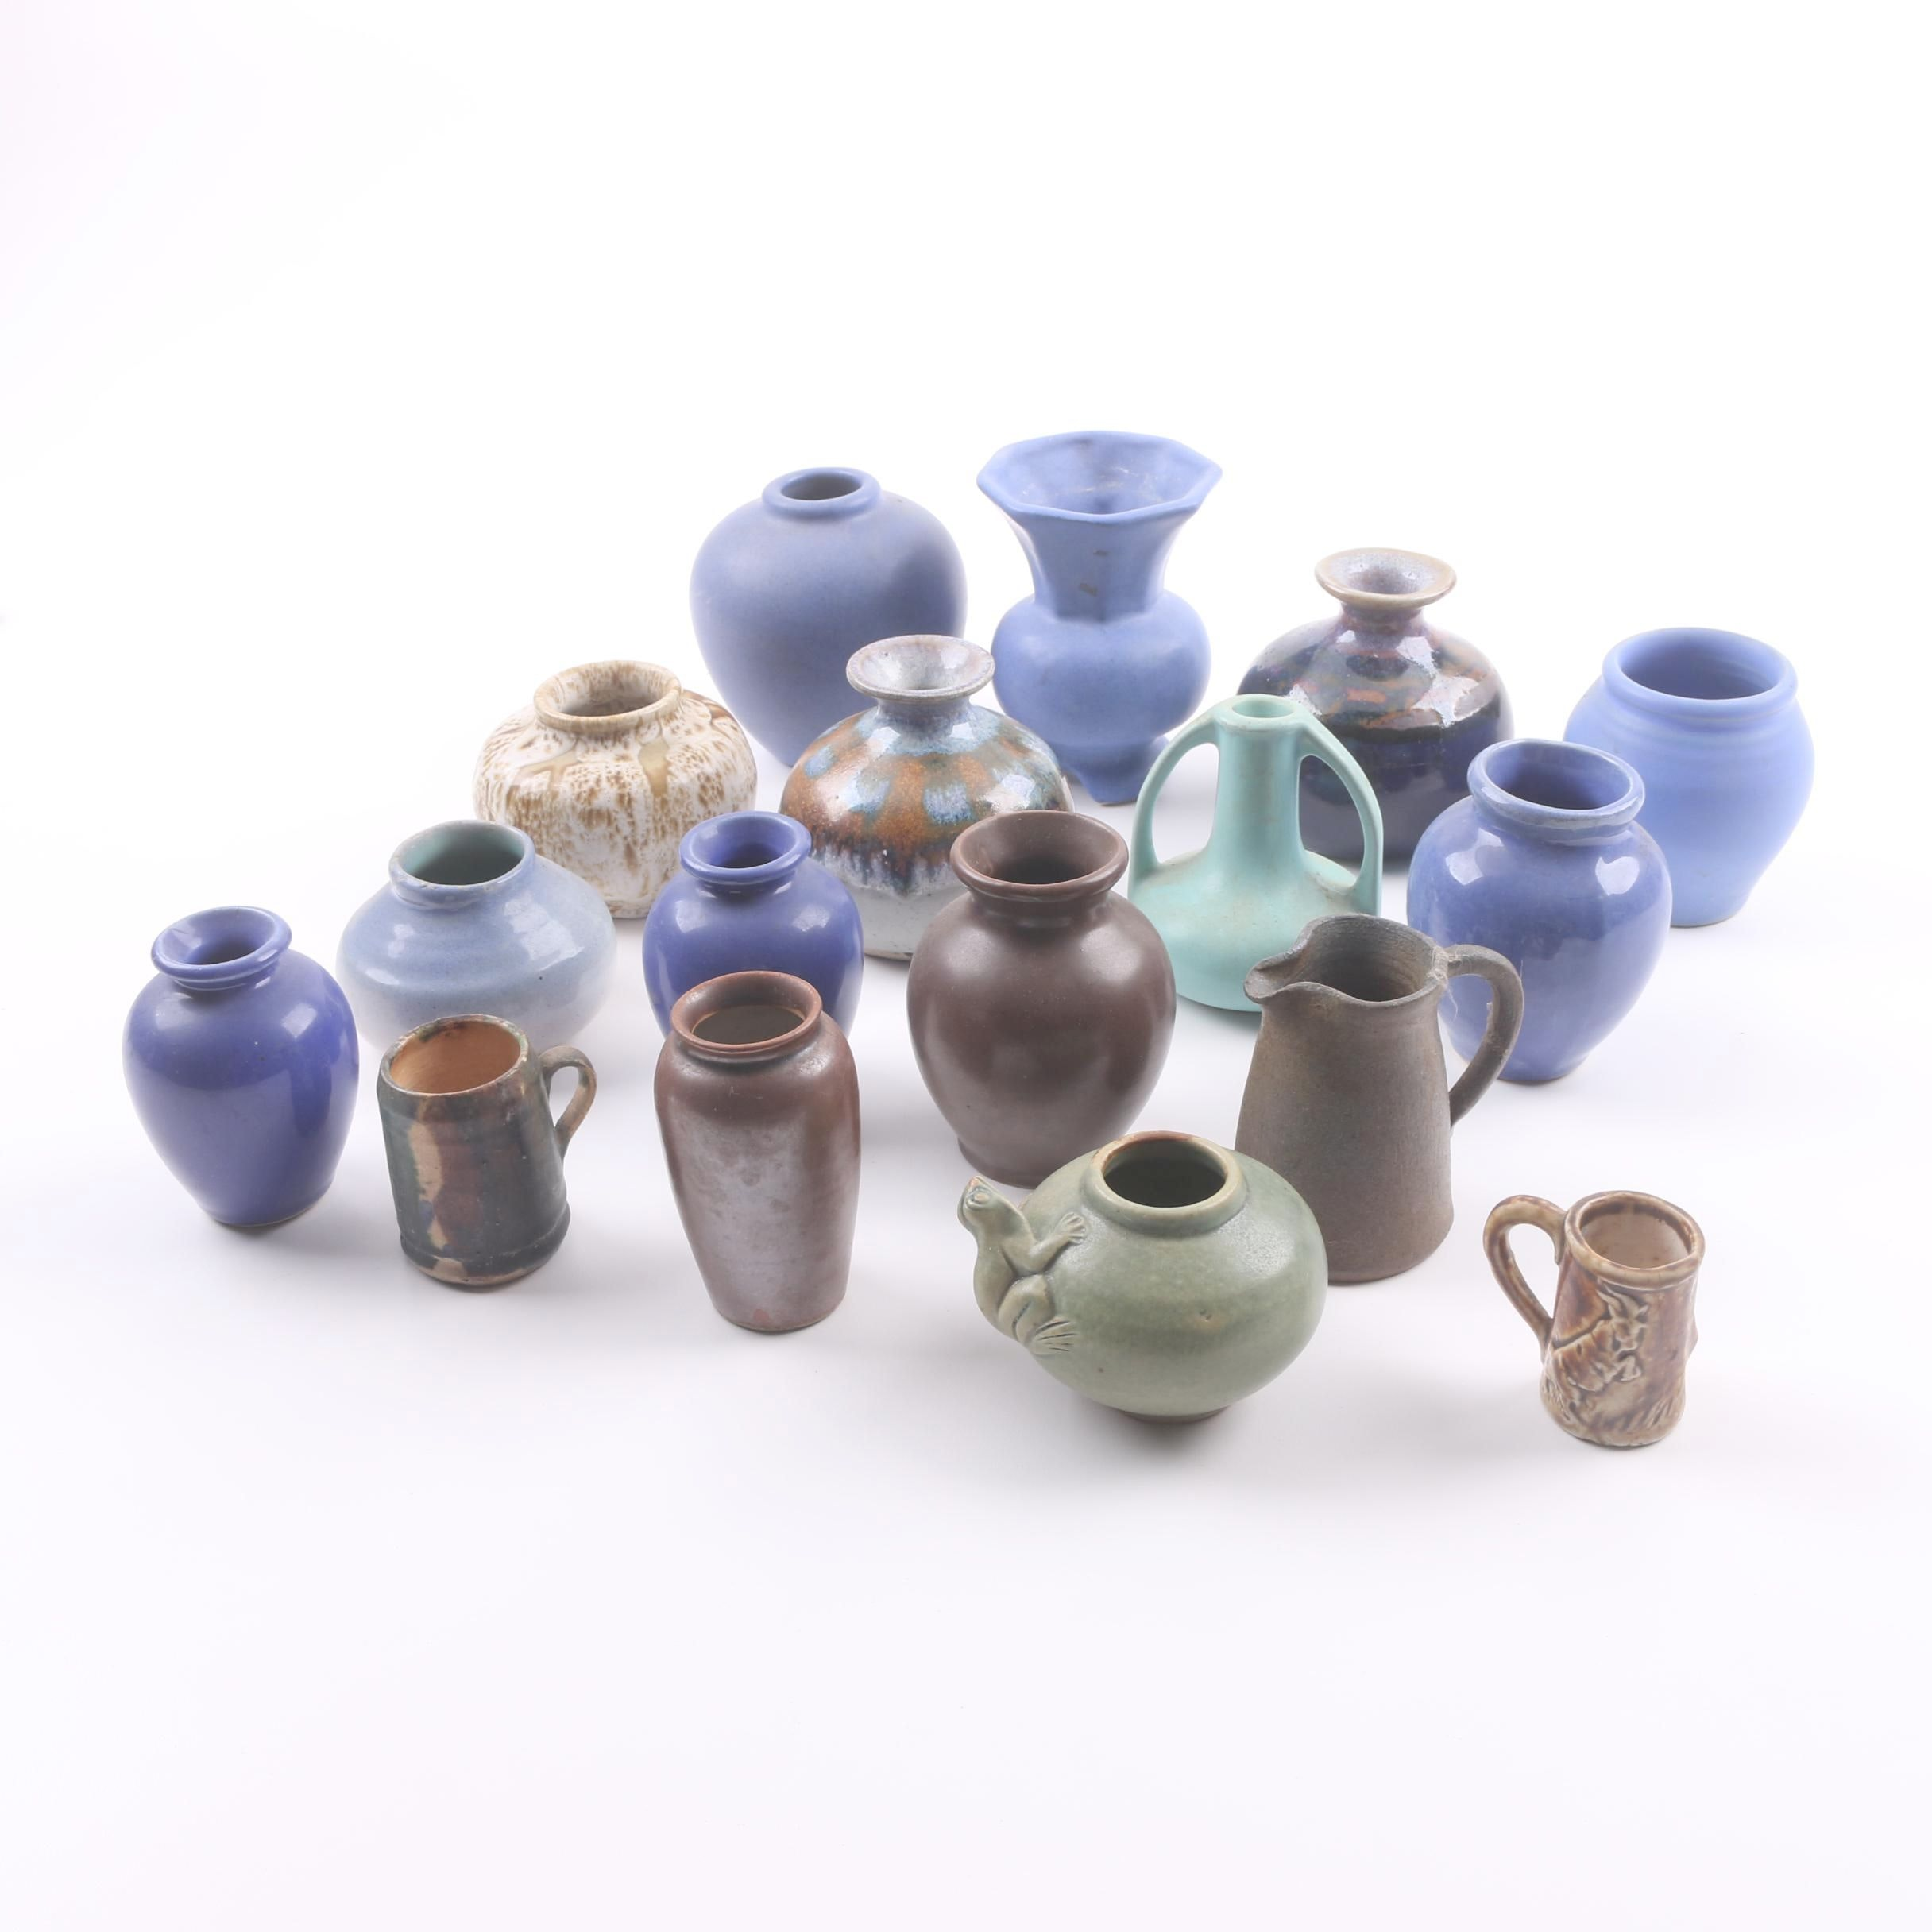 Art Pottery Vases including Niloak, James Towne Collony, & Pigeon Forge